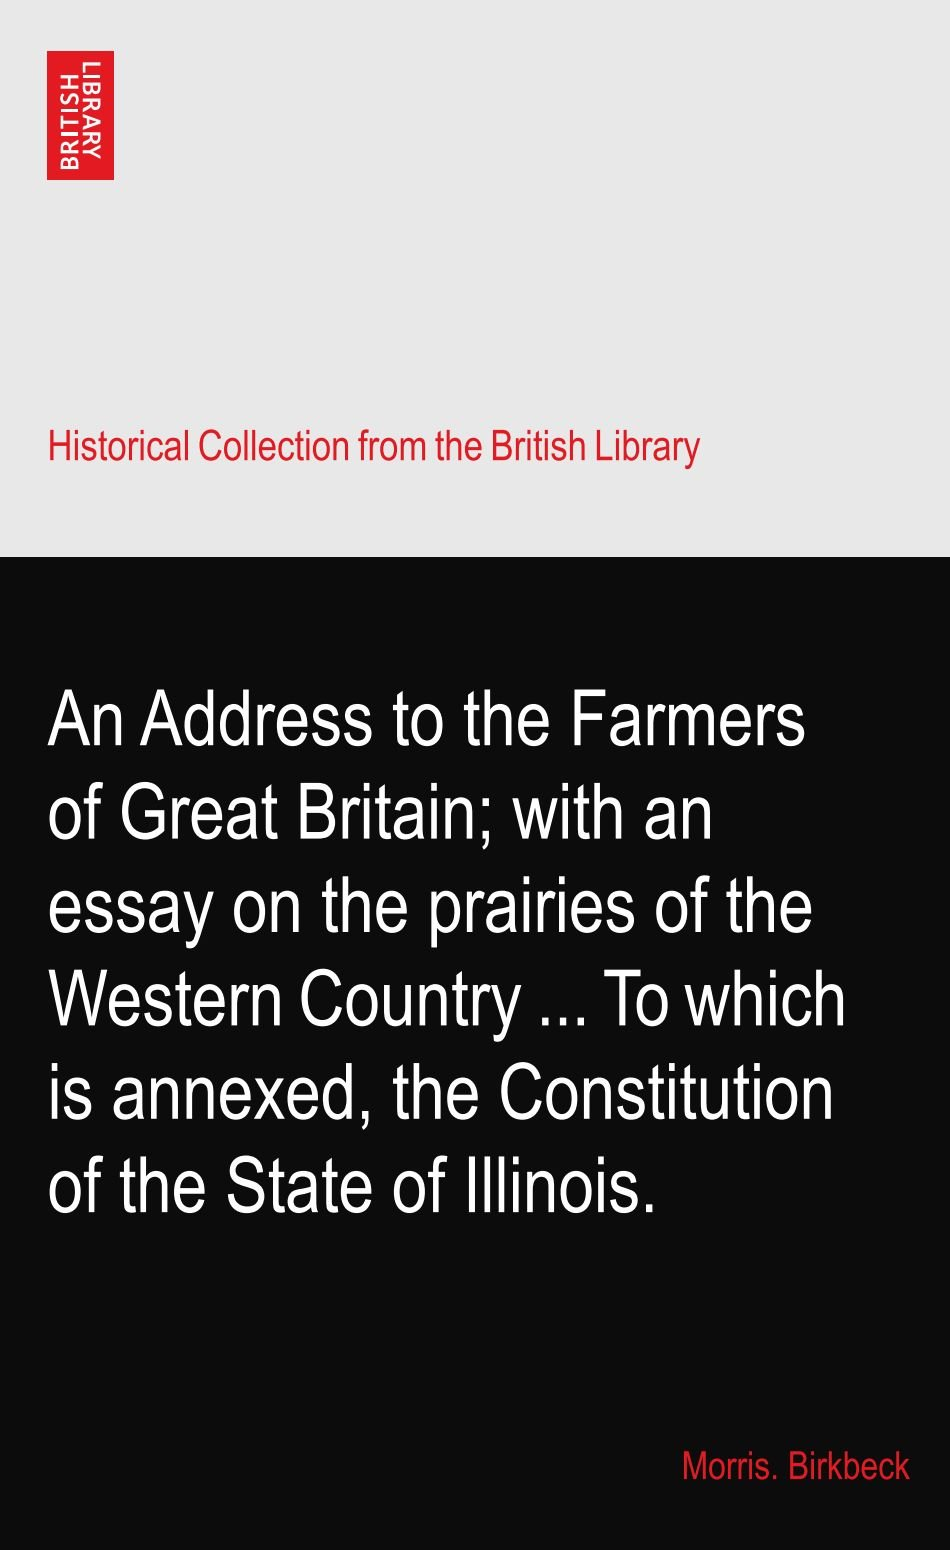 An Address to the Farmers of Great Britain; with an essay on the prairies of the Western Country ... To which is annexed, the Constitution of the State of Illinois. PDF